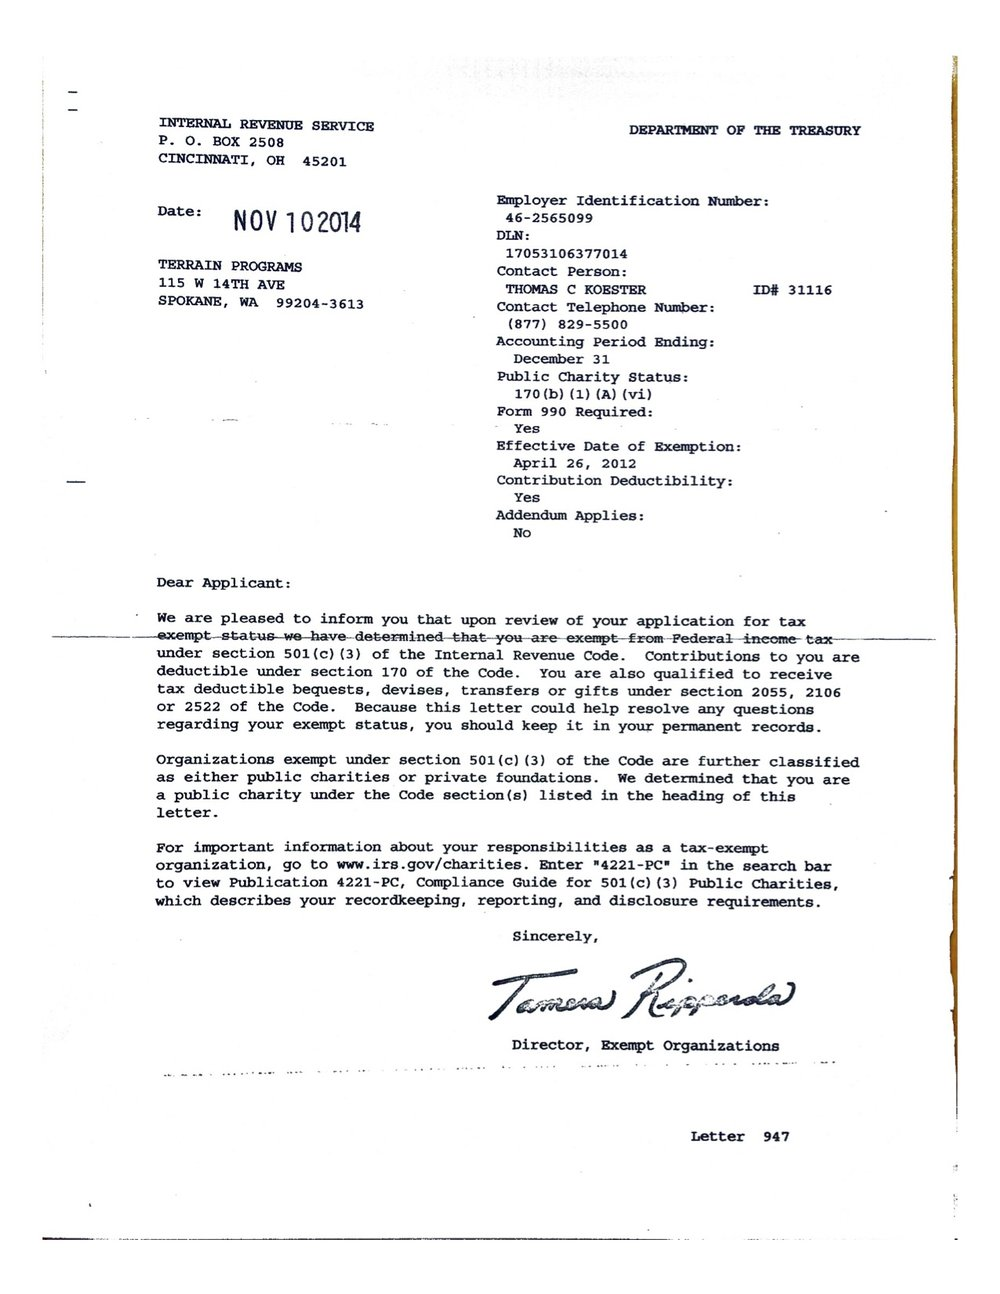 TERRAIN IRS determination letter.jpg